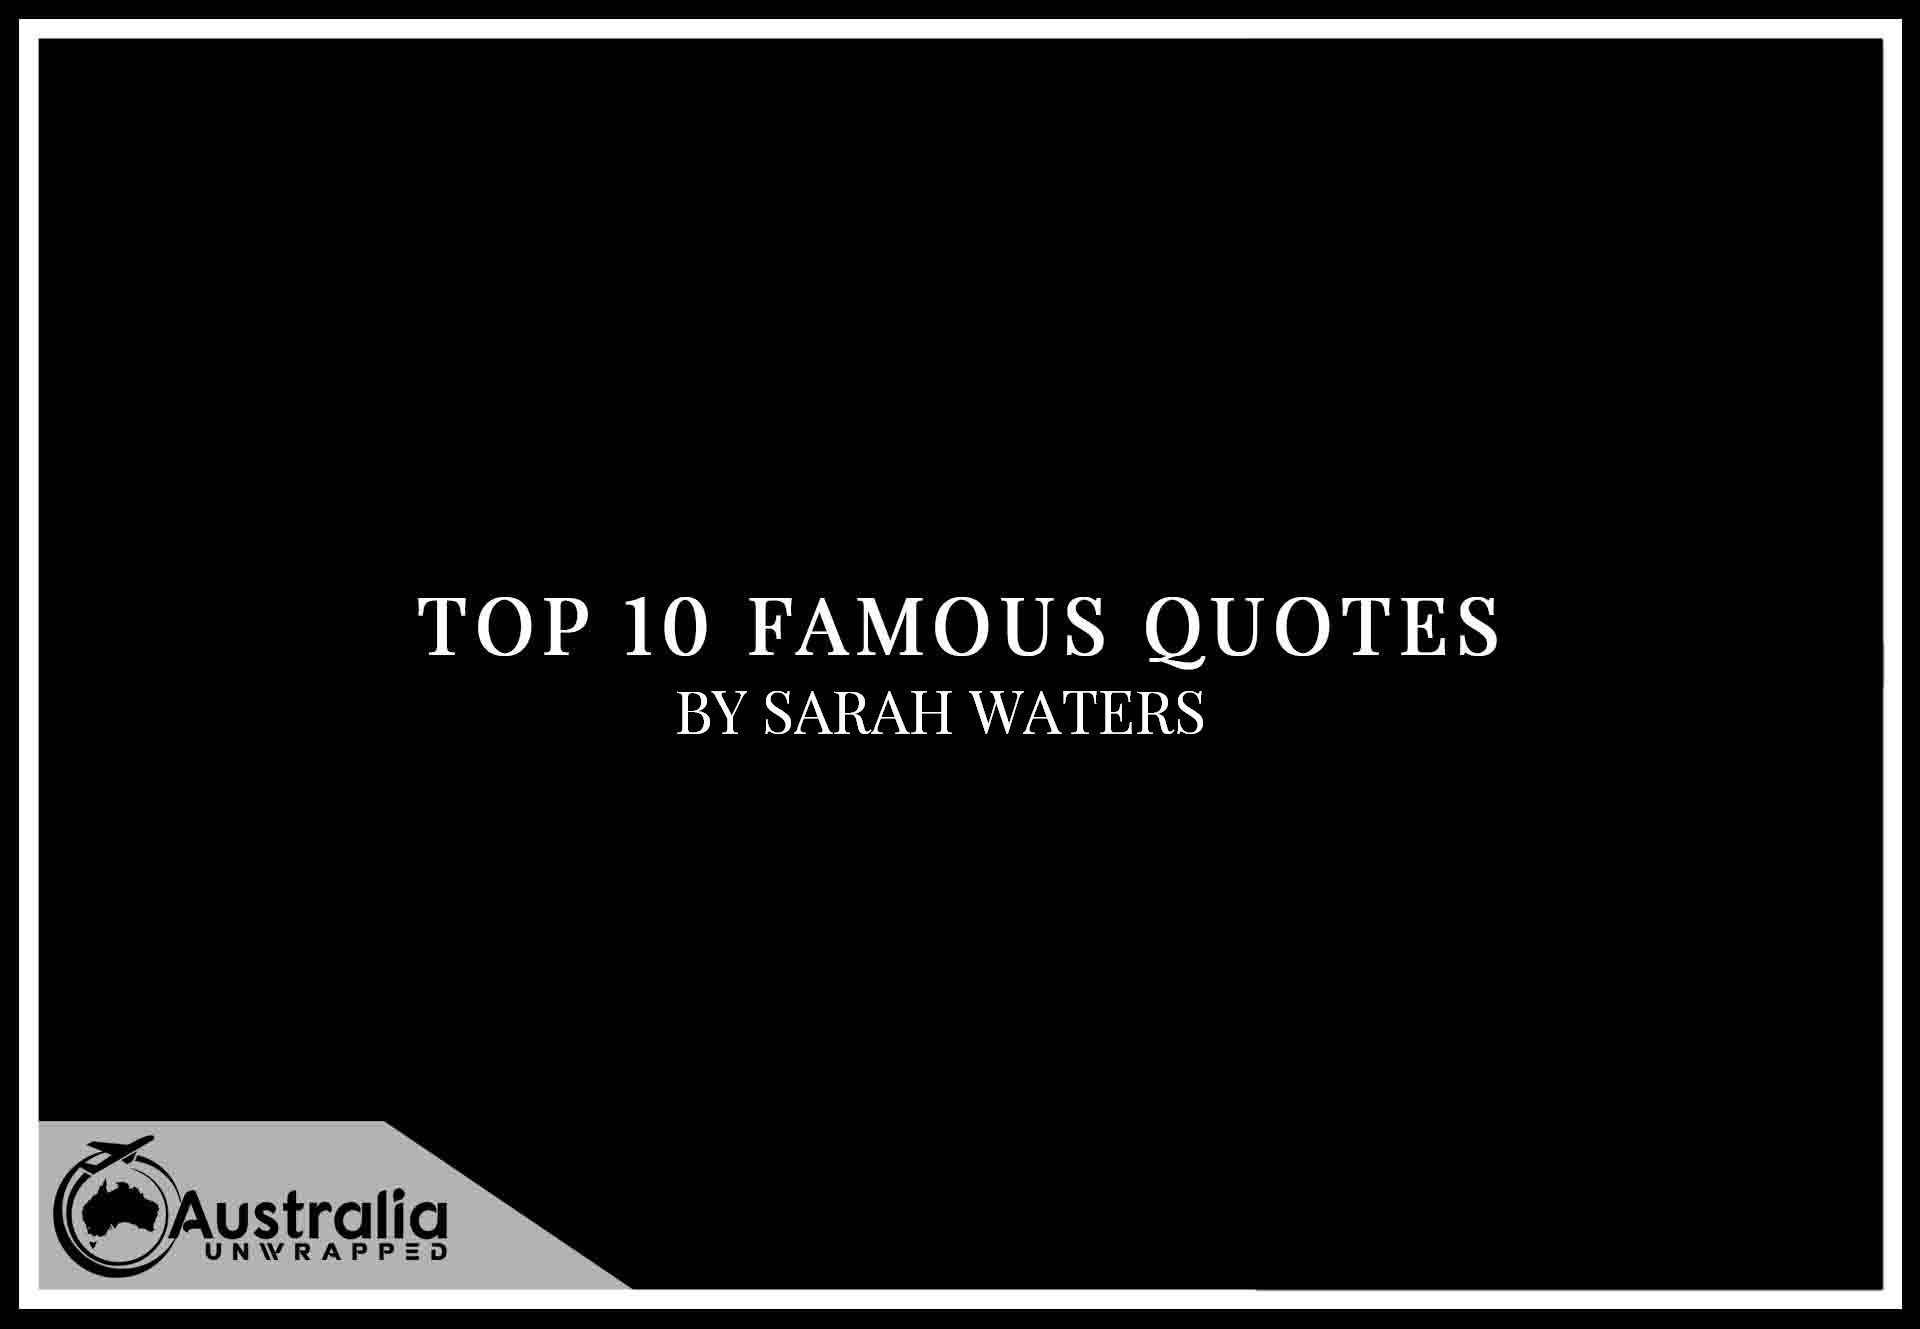 Top 10 Famous Quotes by Author Sarah Waters